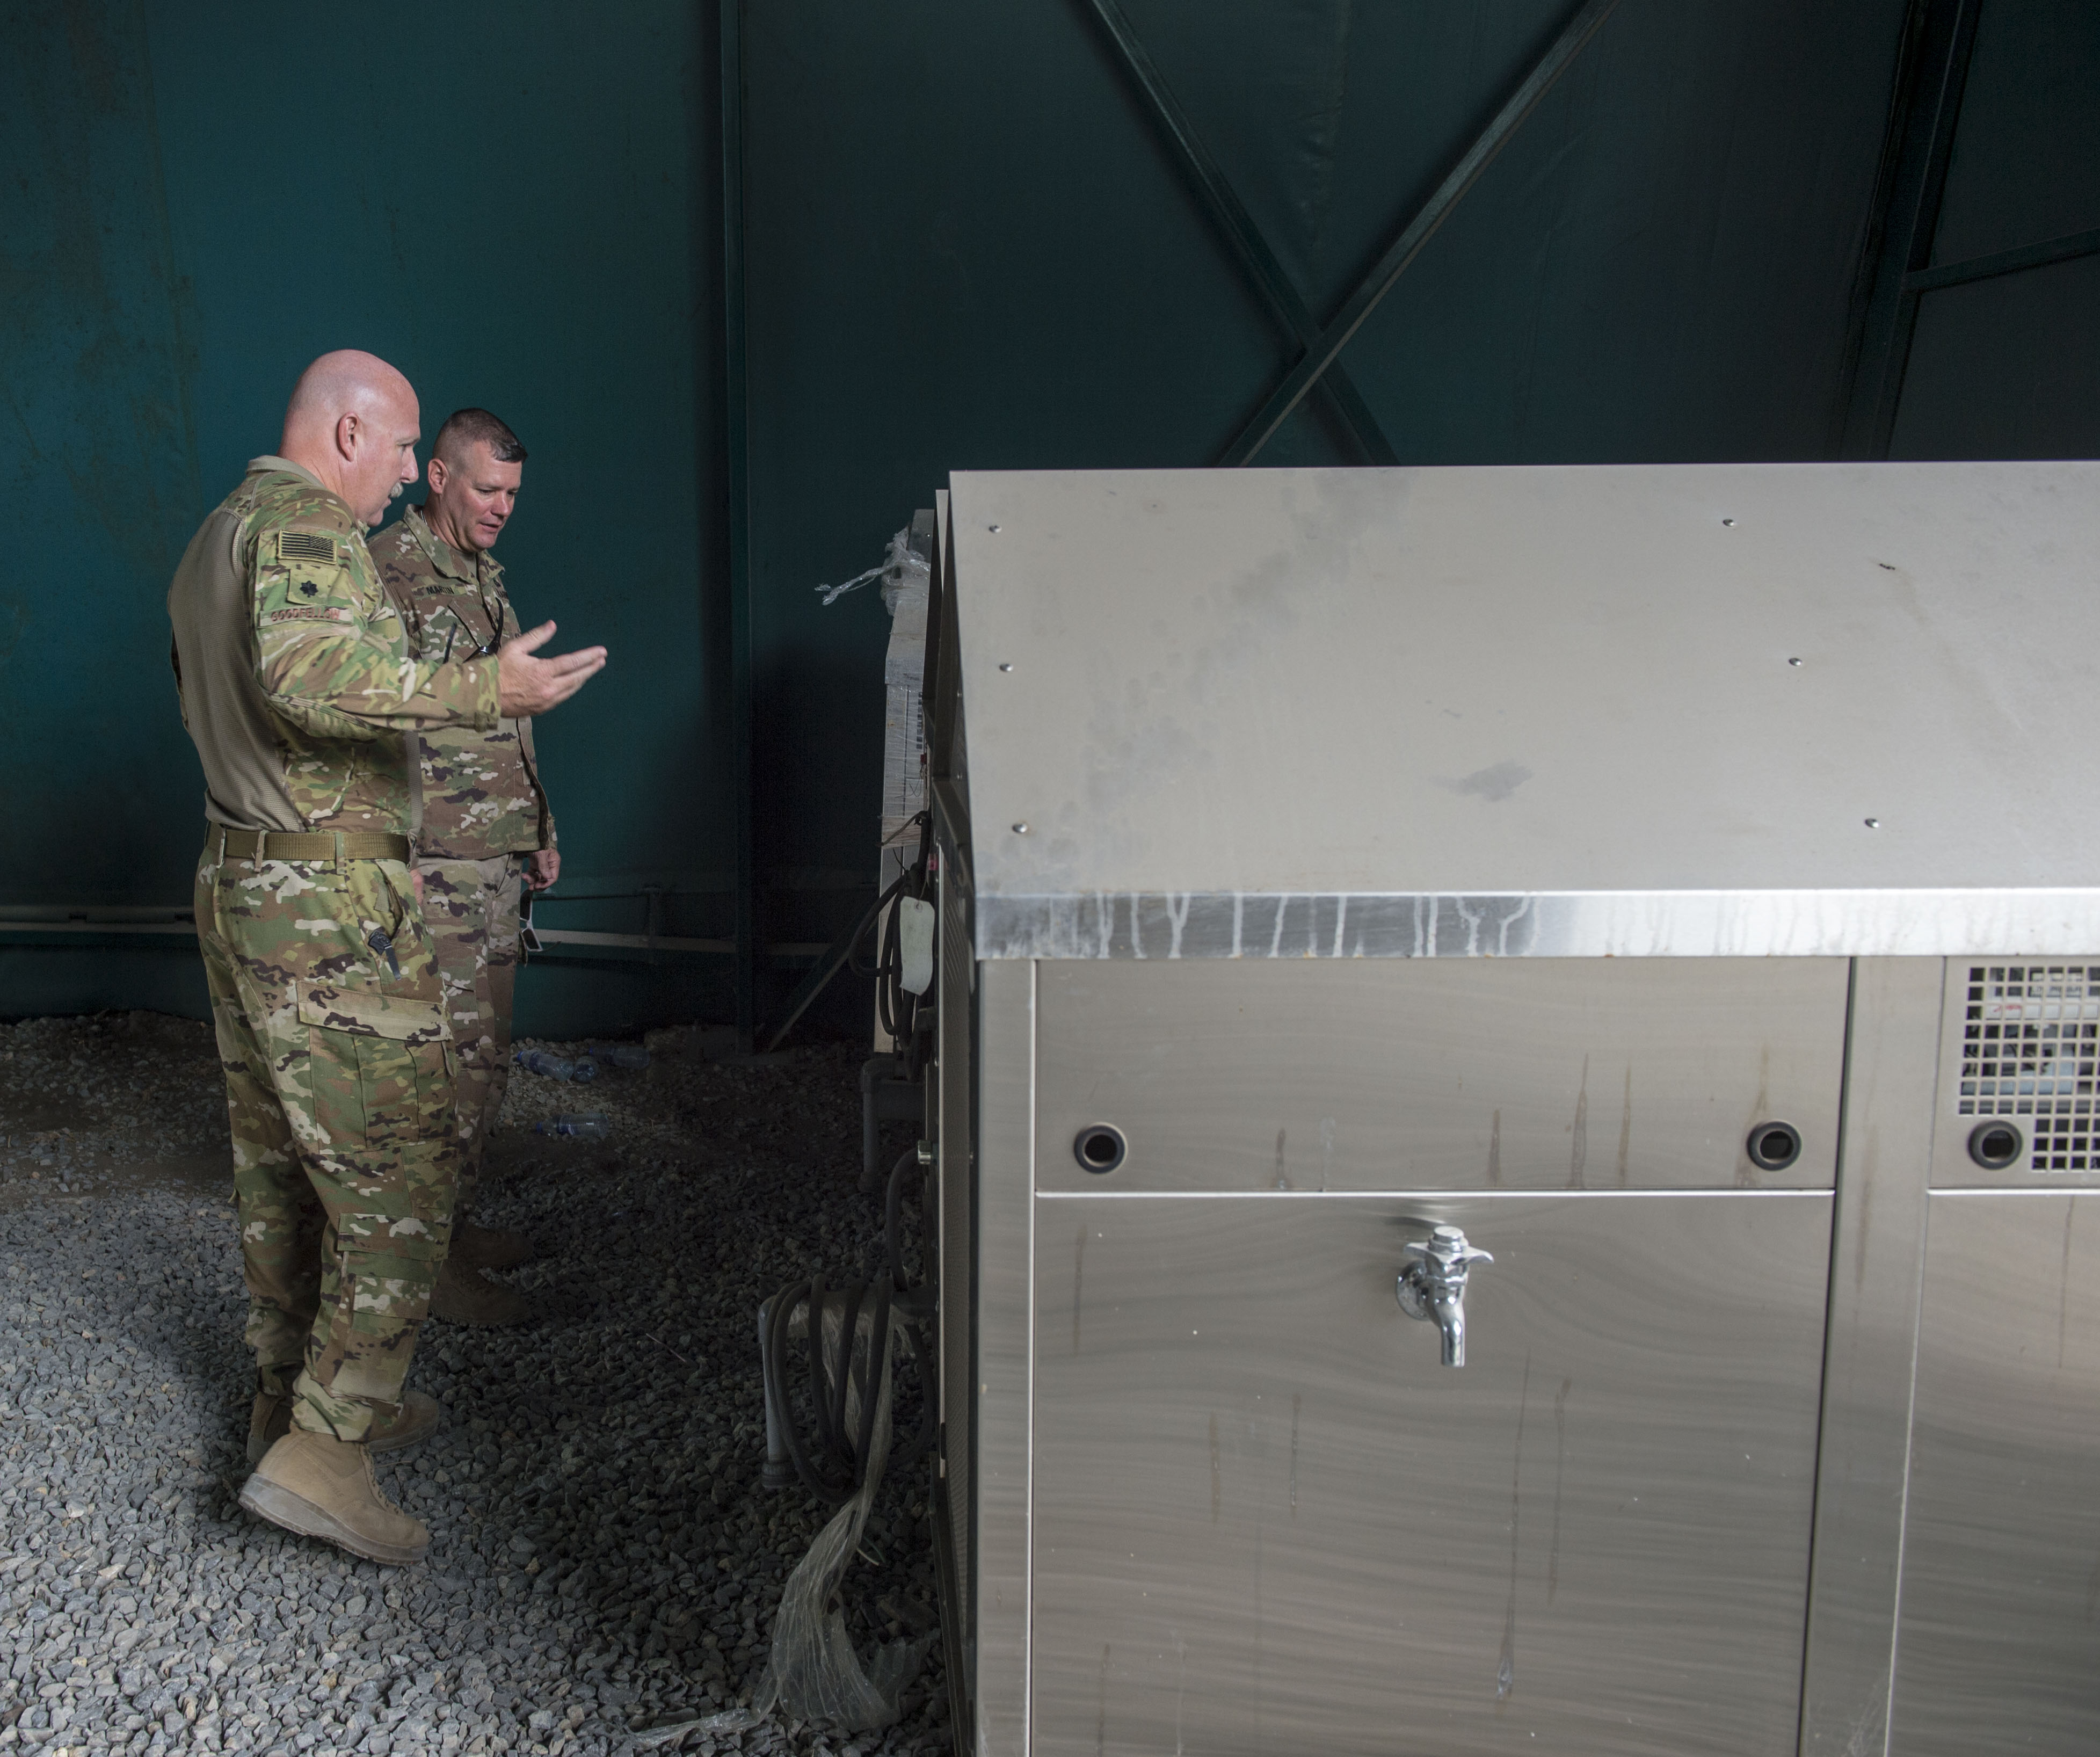 U.S. Air Force Lt. Col. Vance Goodfellow, left, 475th Expeditionary Air Base Squadron (EABS) commander, speaks with U.S. Army Lt. Col. Todd Martin, safety officer assigned to the Combined Joint Task Force - Horn of Africa (CJTF-HOA) Safety directorate, about water tanks during a battlefield circulation site visit at Camp Simba in Manda Bay, Kenya, Feb. 24, 2018. Camp Simba is currently operated by the 475th EABS, who fall under the 435th Air Expeditionary Wing, but the property hosts CJTF-HOA personnel and is in the CJTF-HOA area of operations. As such, the CJTF-HOA Safety and Inspector General directorates provide support to the service members, Department of Defense civilians, and local national contractors who work on the camp. (U.S. Air Force photo by Staff Sgt. Timothy Moore)